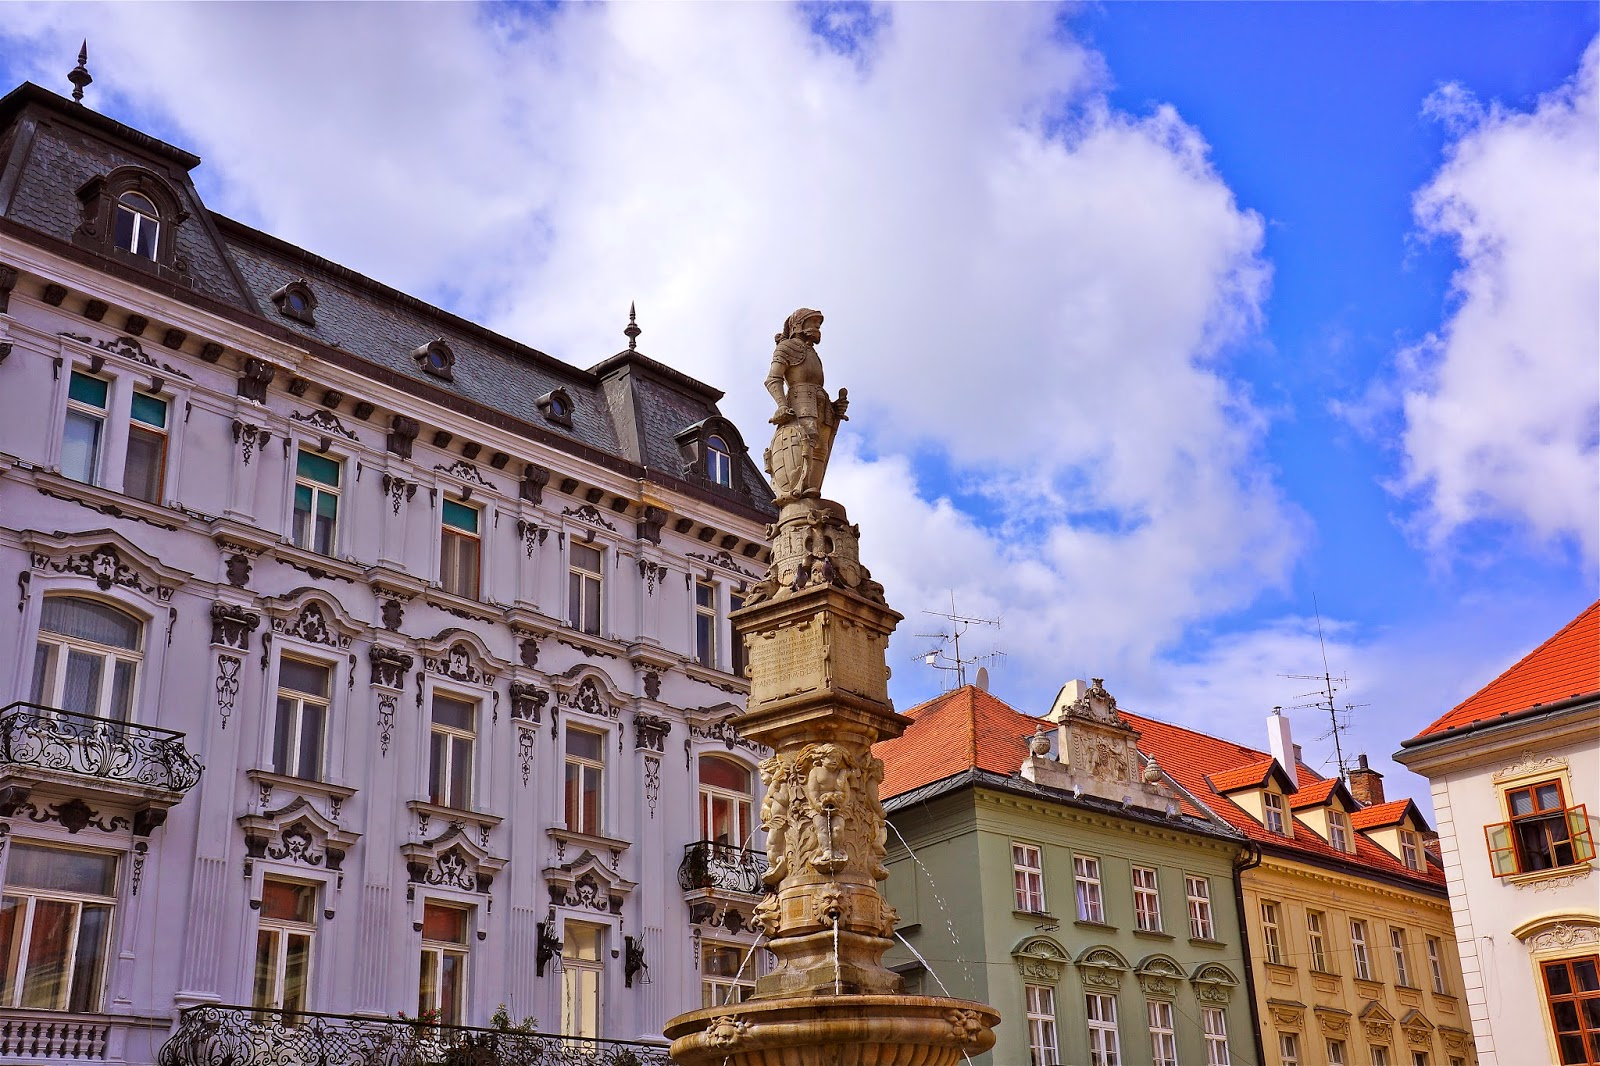 Picture of the Roland fountain in the Main Square of Bratislava.